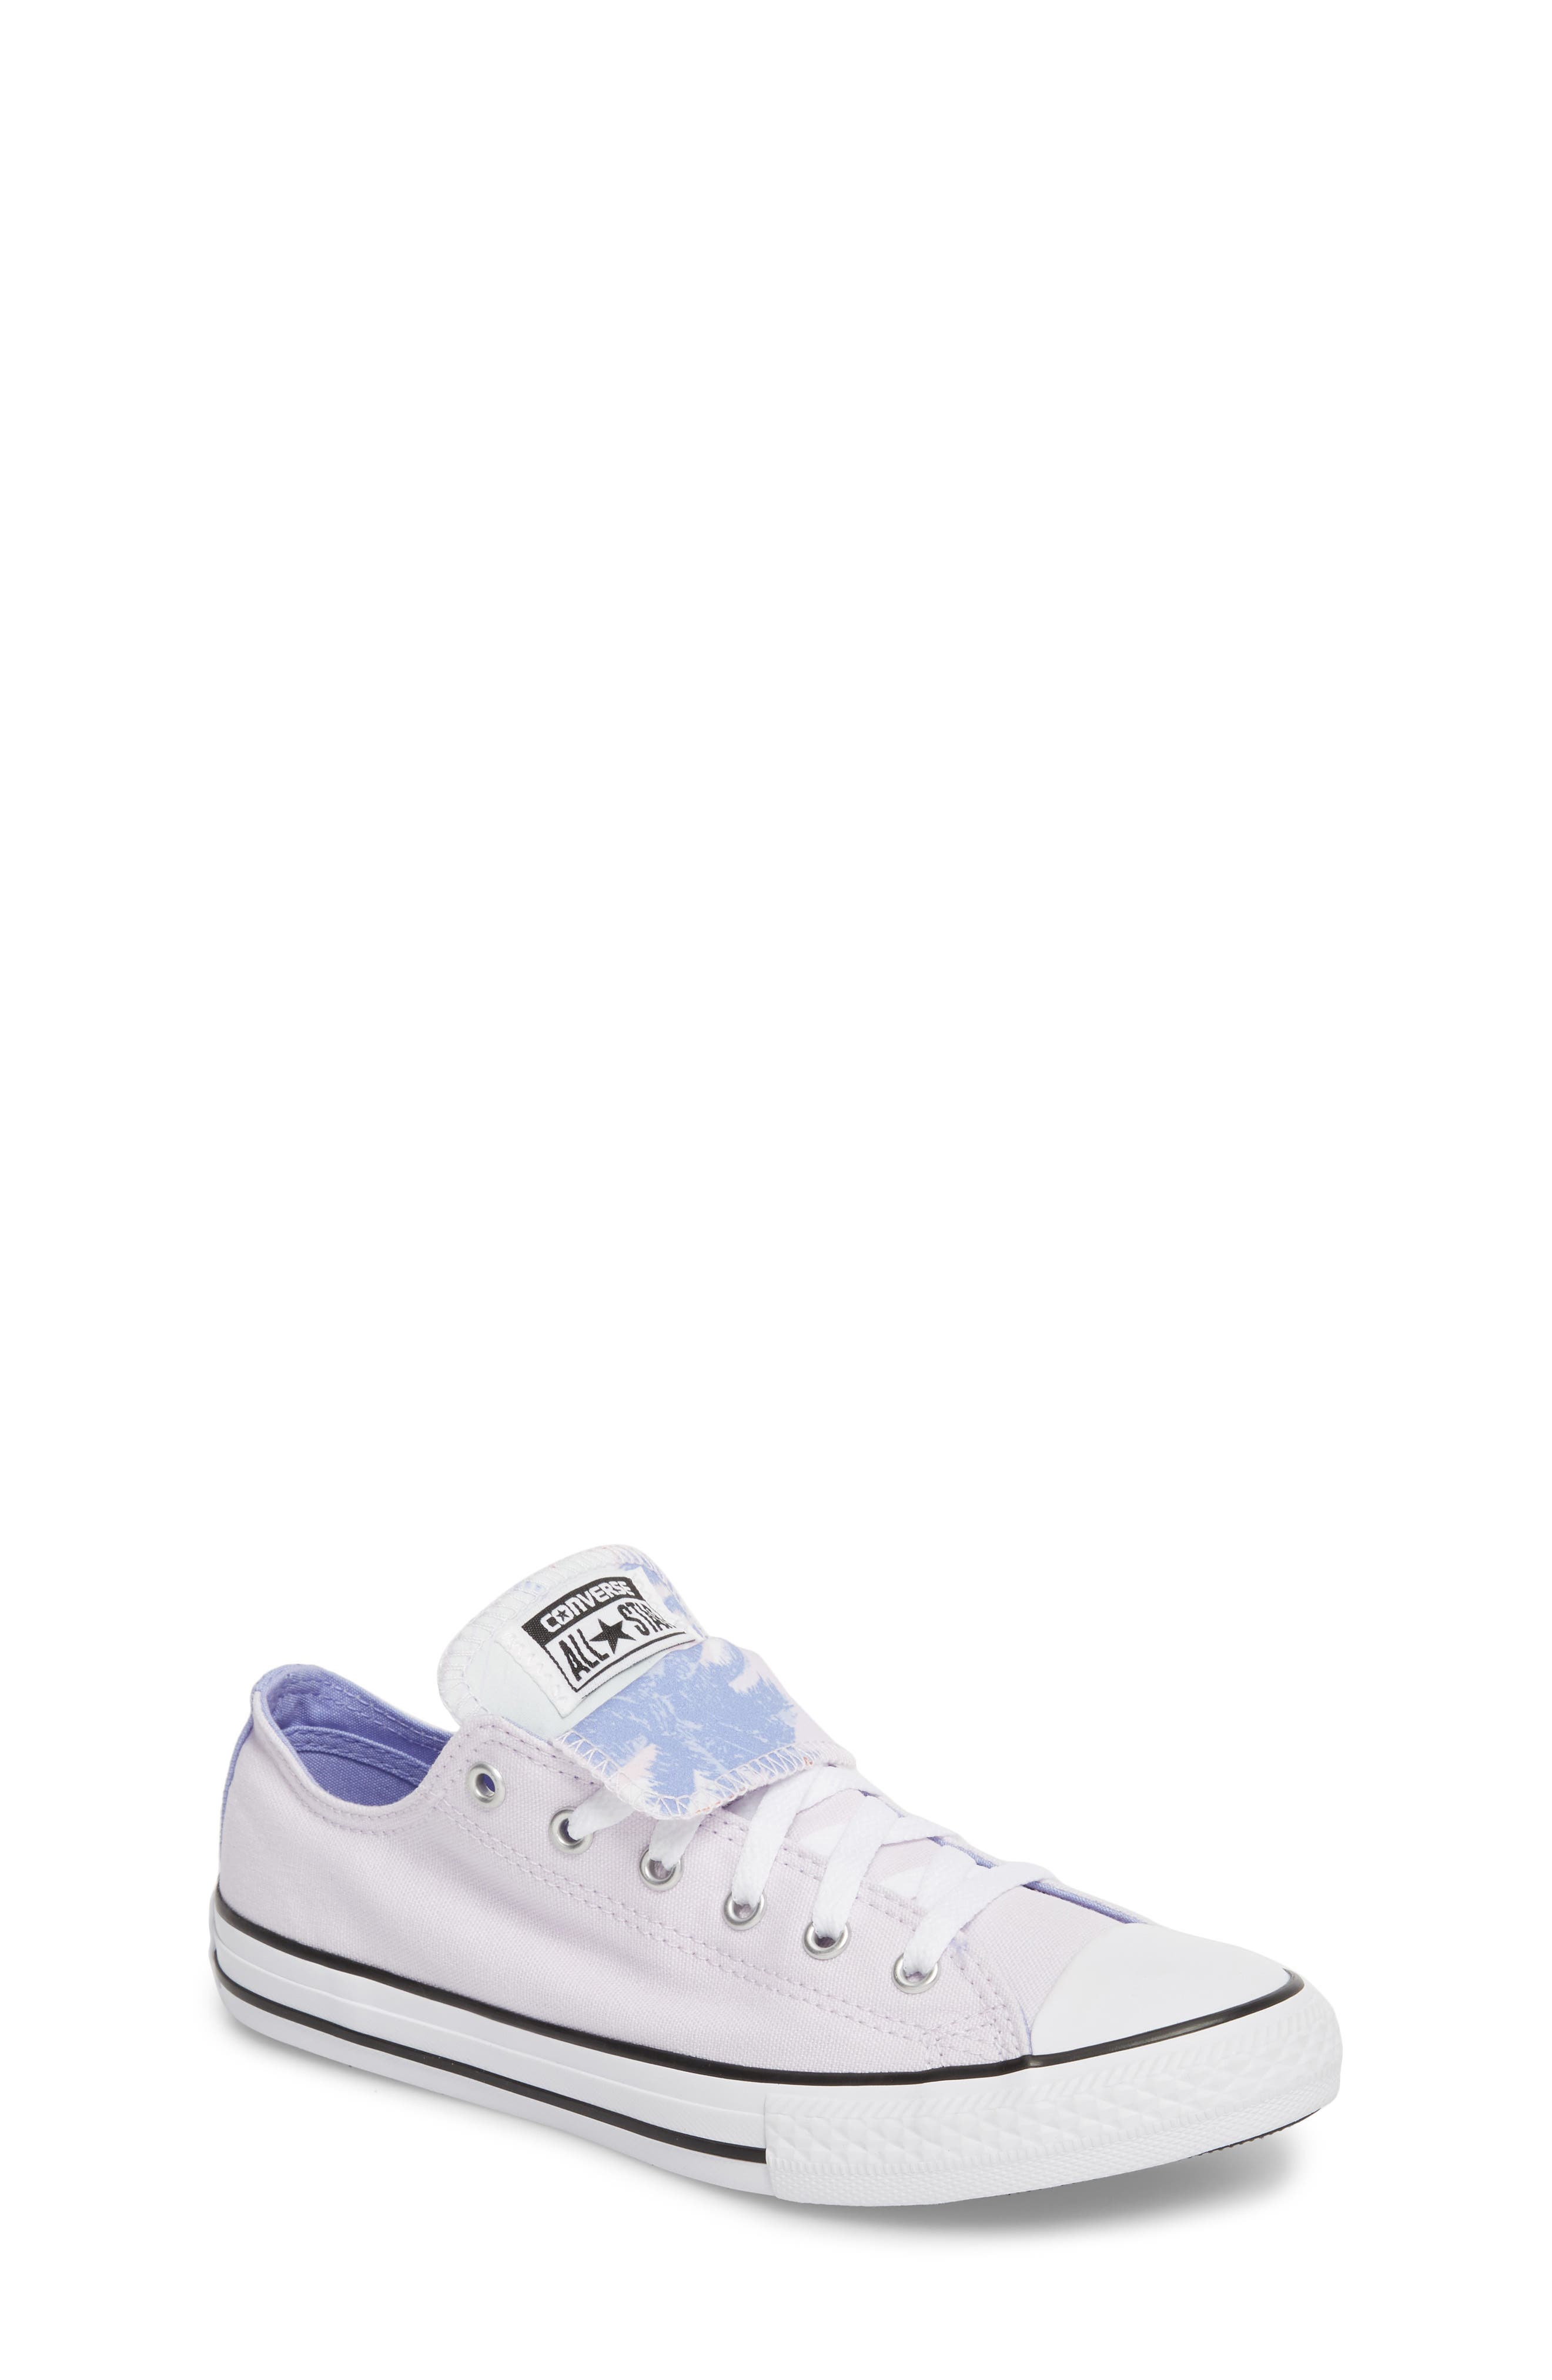 Converse Chuck Taylor® All Star® Palm Tree Double Tongue Low Top Sneaker (Toddler, Little Kid & Big Kid)